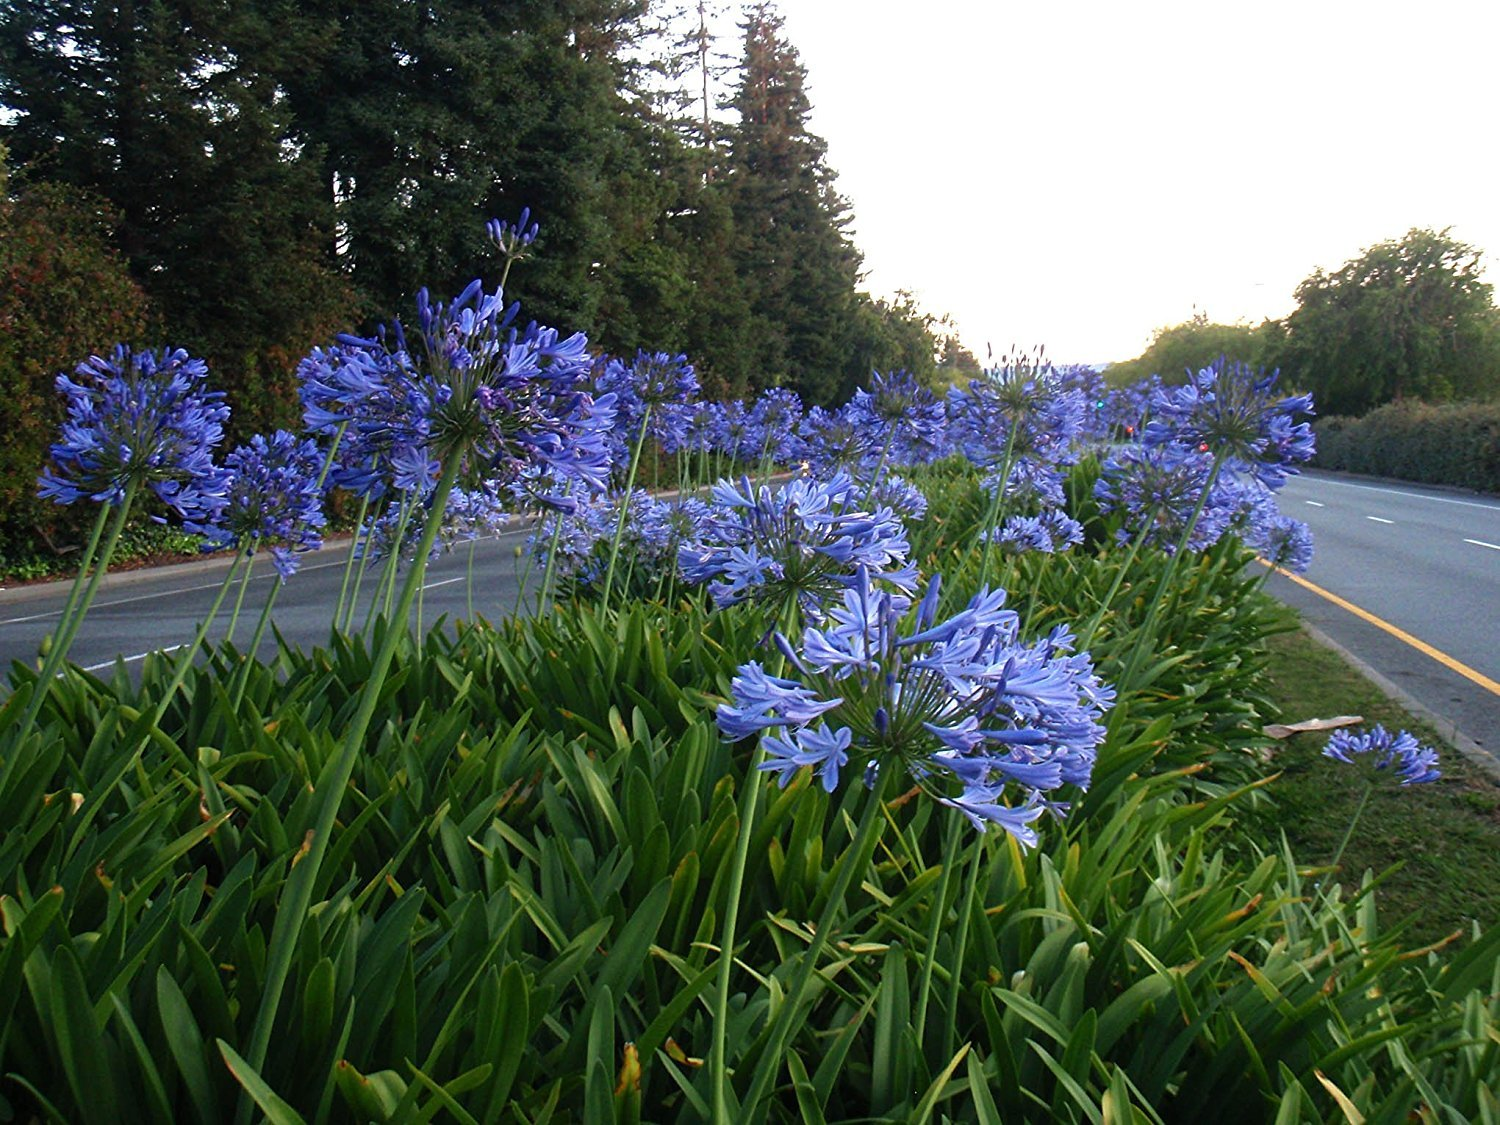 Amazon agapanthus lily of the nile qty 30 live plants amazon agapanthus lily of the nile qty 30 live plants groundcover garden outdoor izmirmasajfo